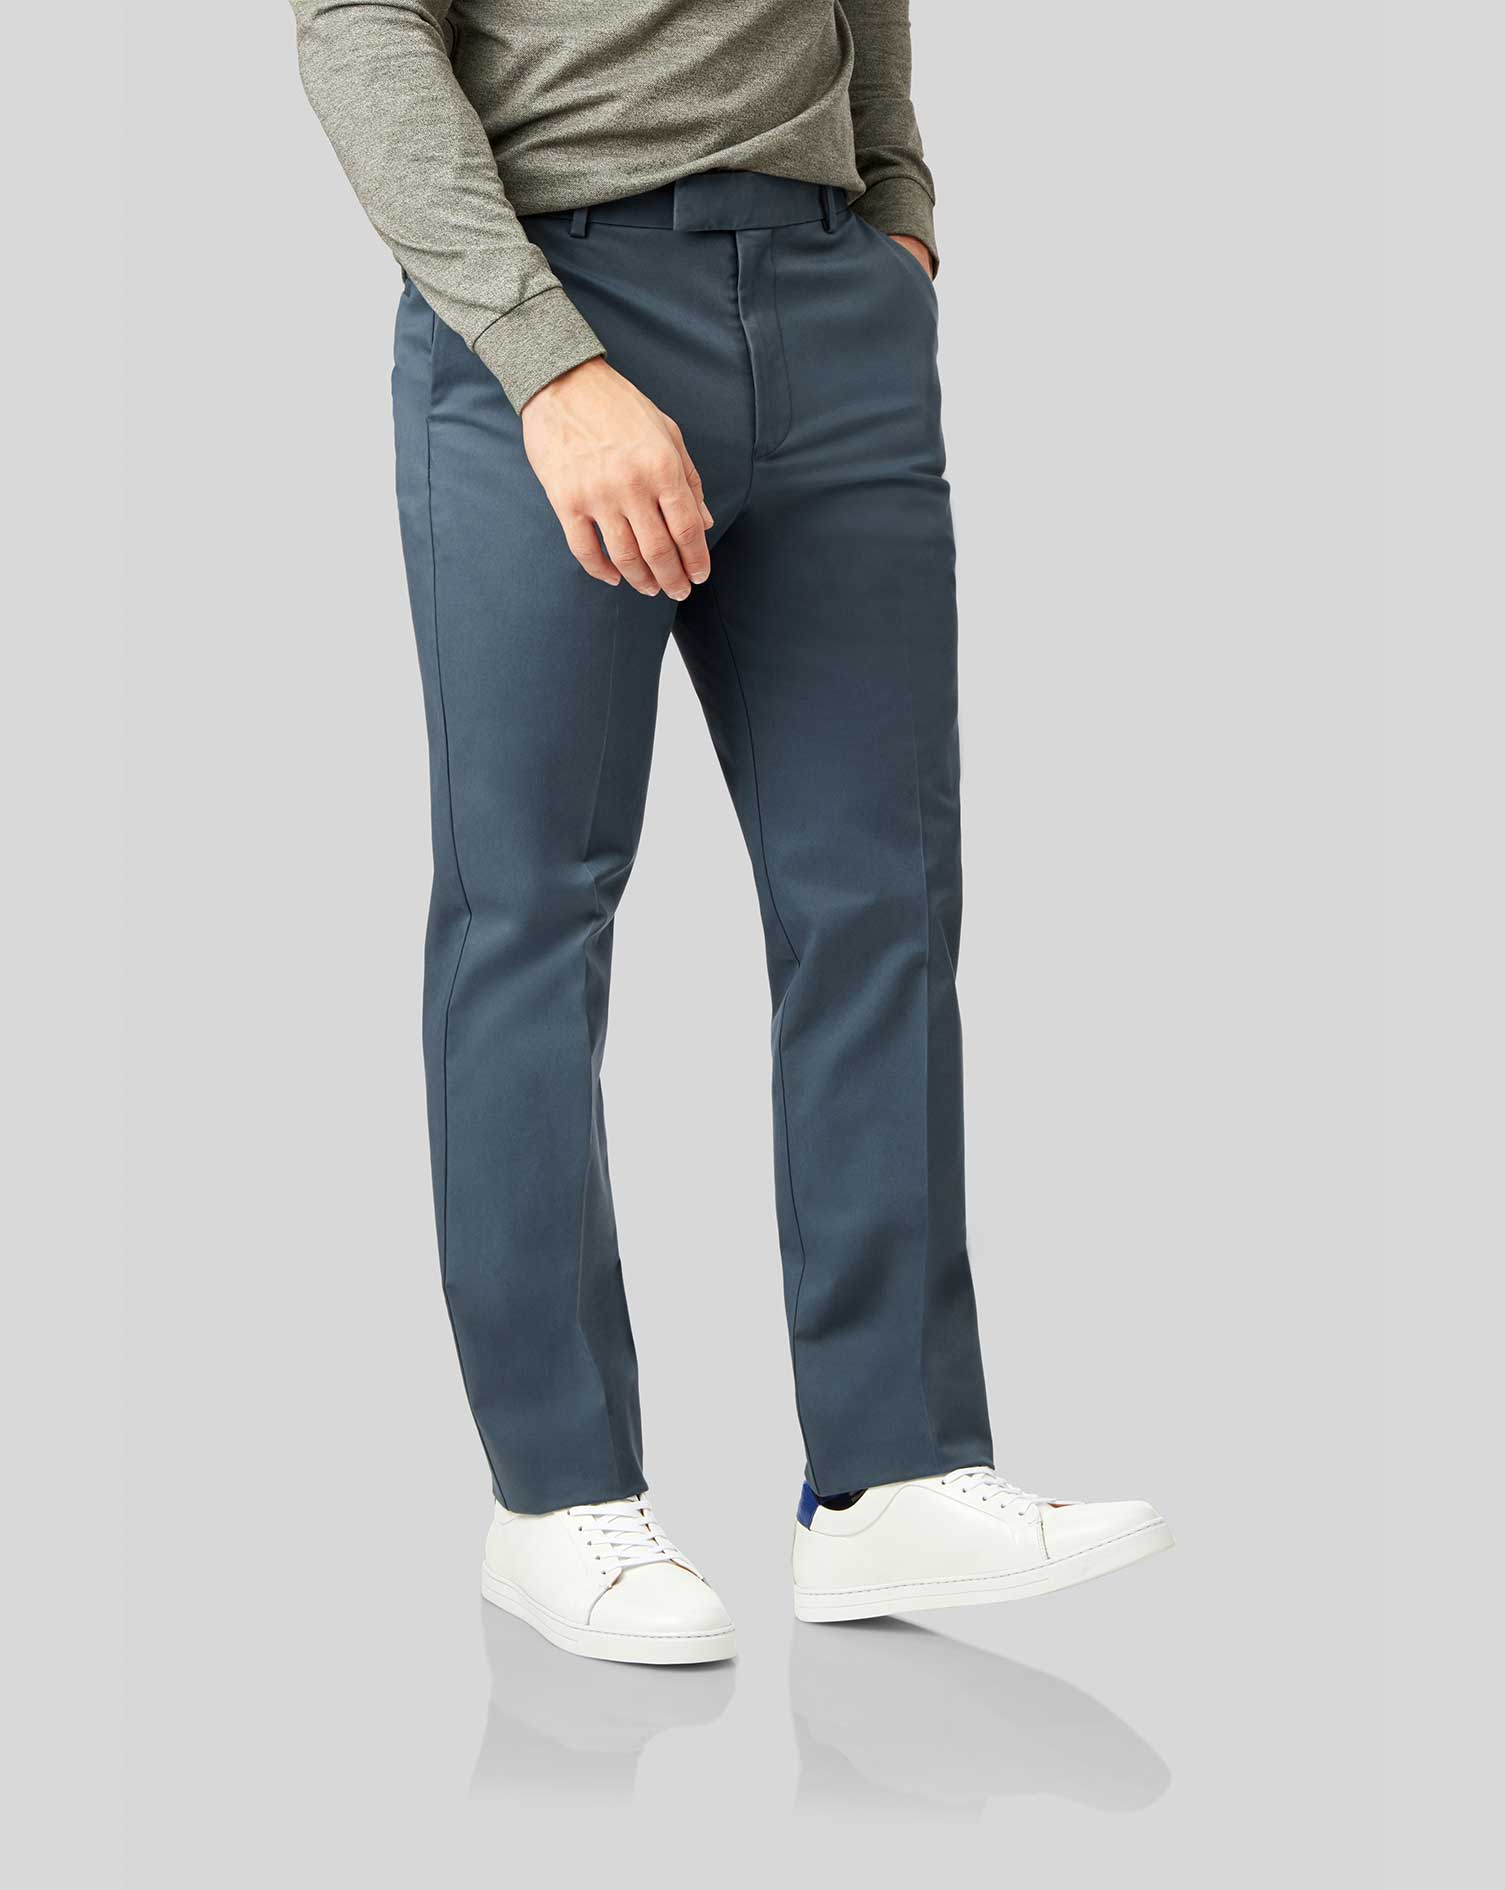 Cotton Airforce Blue Flat Front Non-Iron Chinos